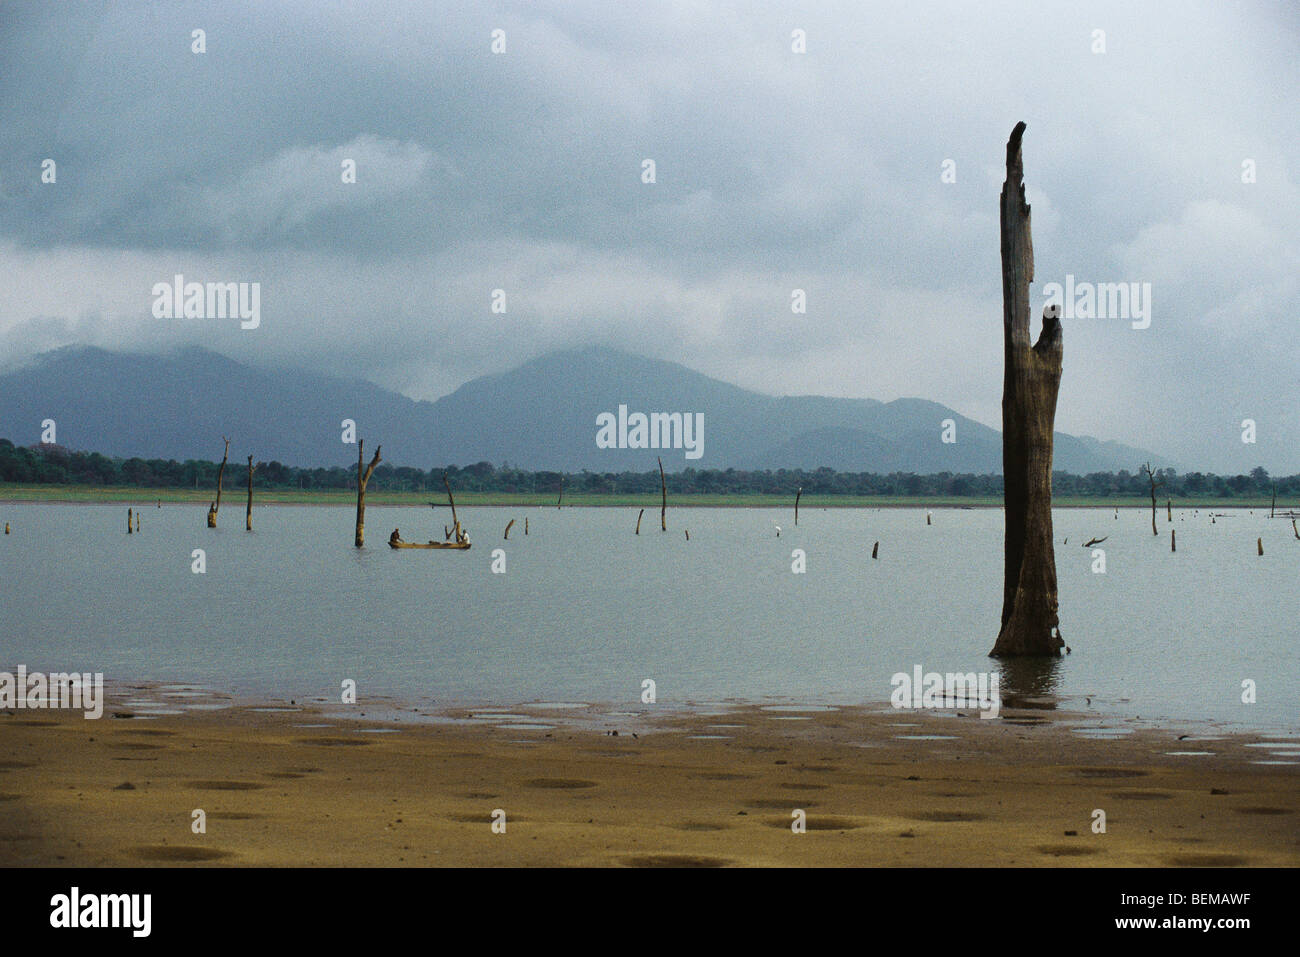 Dead trees standing in lake, fisherman in canoe in distance and mountains in background, Sri Lanka - Stock Image